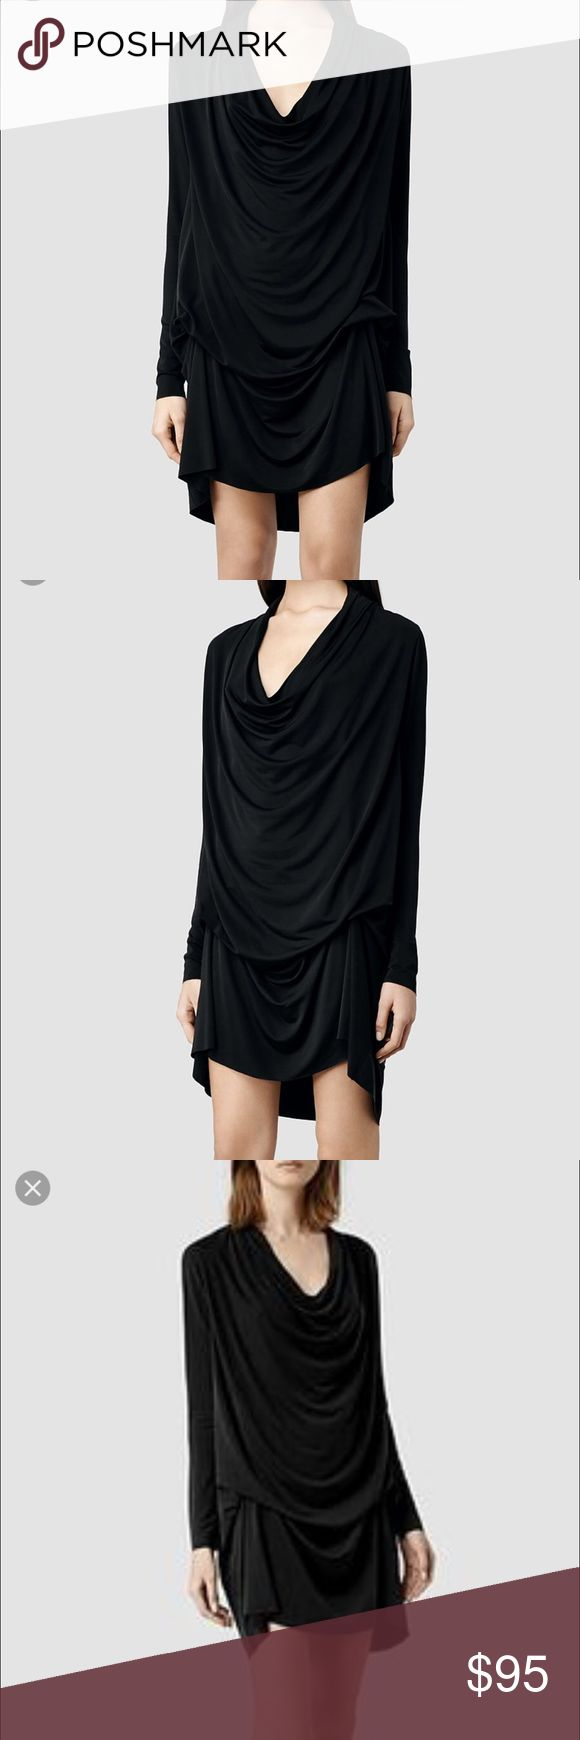 Allsaints Amei Dress Authentic Allsaints Amei dress in black. Size US 4, but fits more like a 6. Stretchy and can really fit up to an 8 or 10 depending on how you like the fit! Great condition! Almost never on sale! Adjustable neck ties to determine different lengths All Saints Dresses